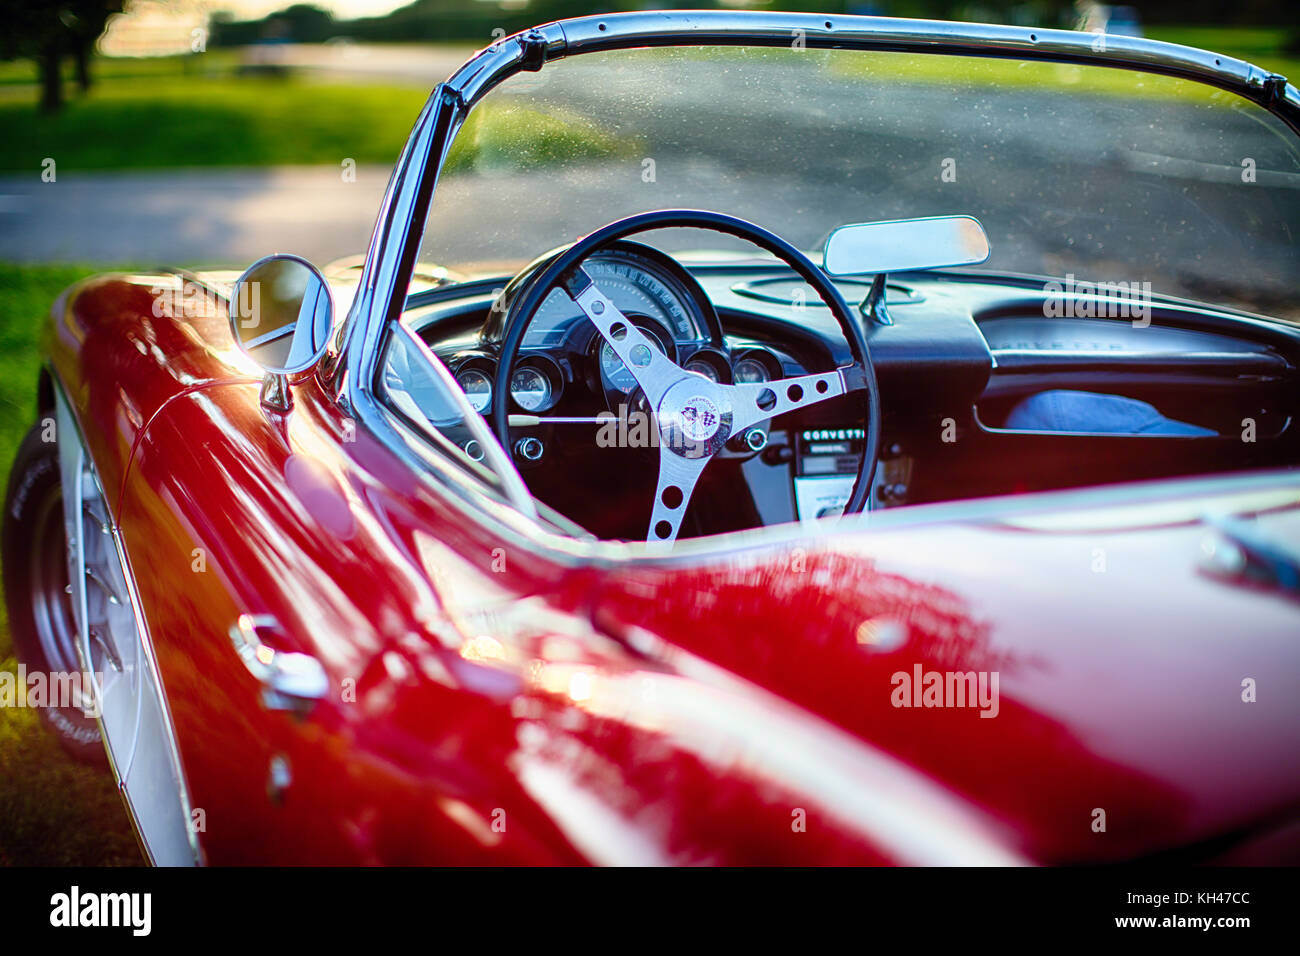 American Sports Cars Close Up High Resolution Stock Photography And Images Alamy